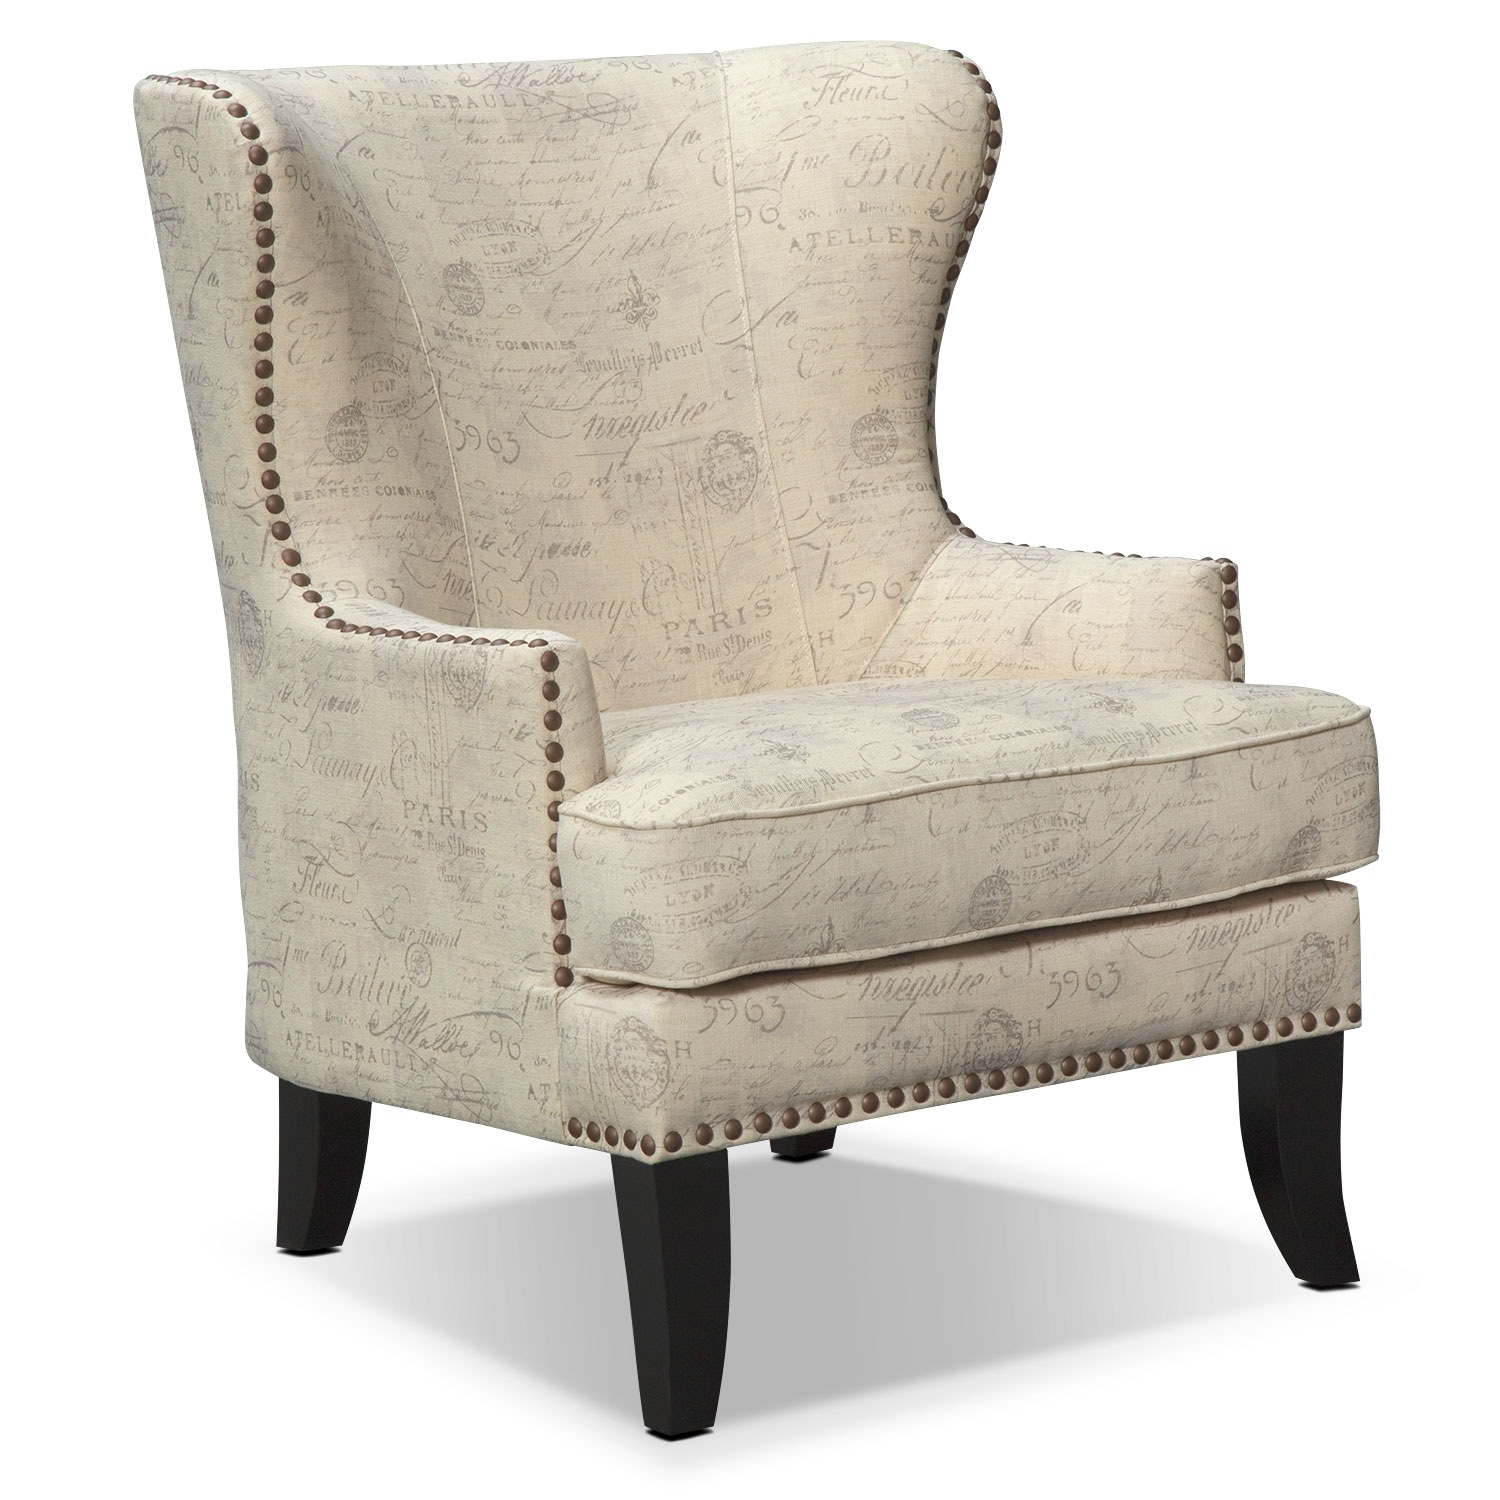 Chairs & Chaises | Living Room Seating | American Signature Furniture